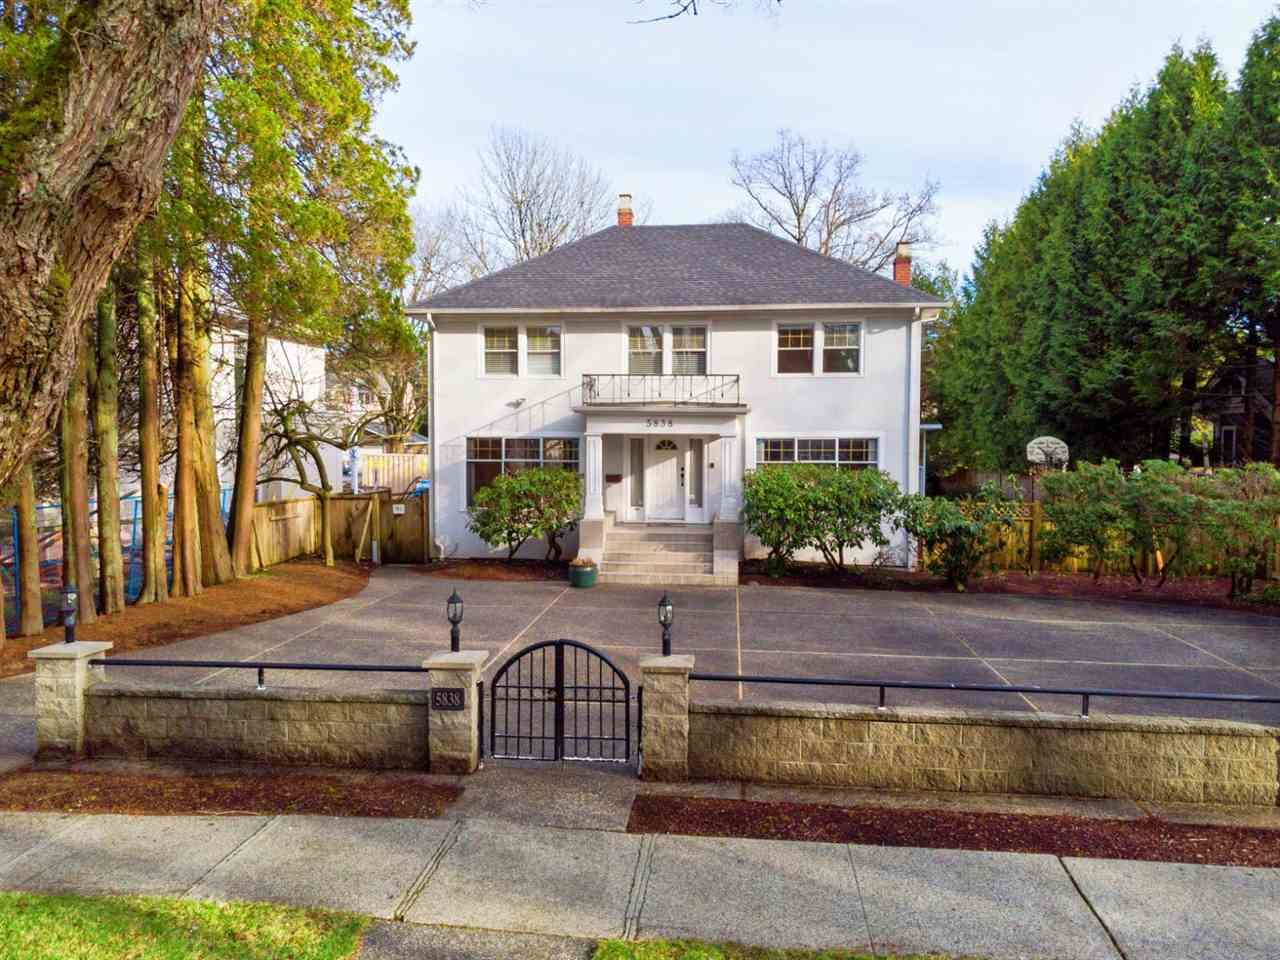 Main Photo: 5838 CHURCHILL Street in Vancouver: South Granville House for sale (Vancouver West)  : MLS®# R2543960